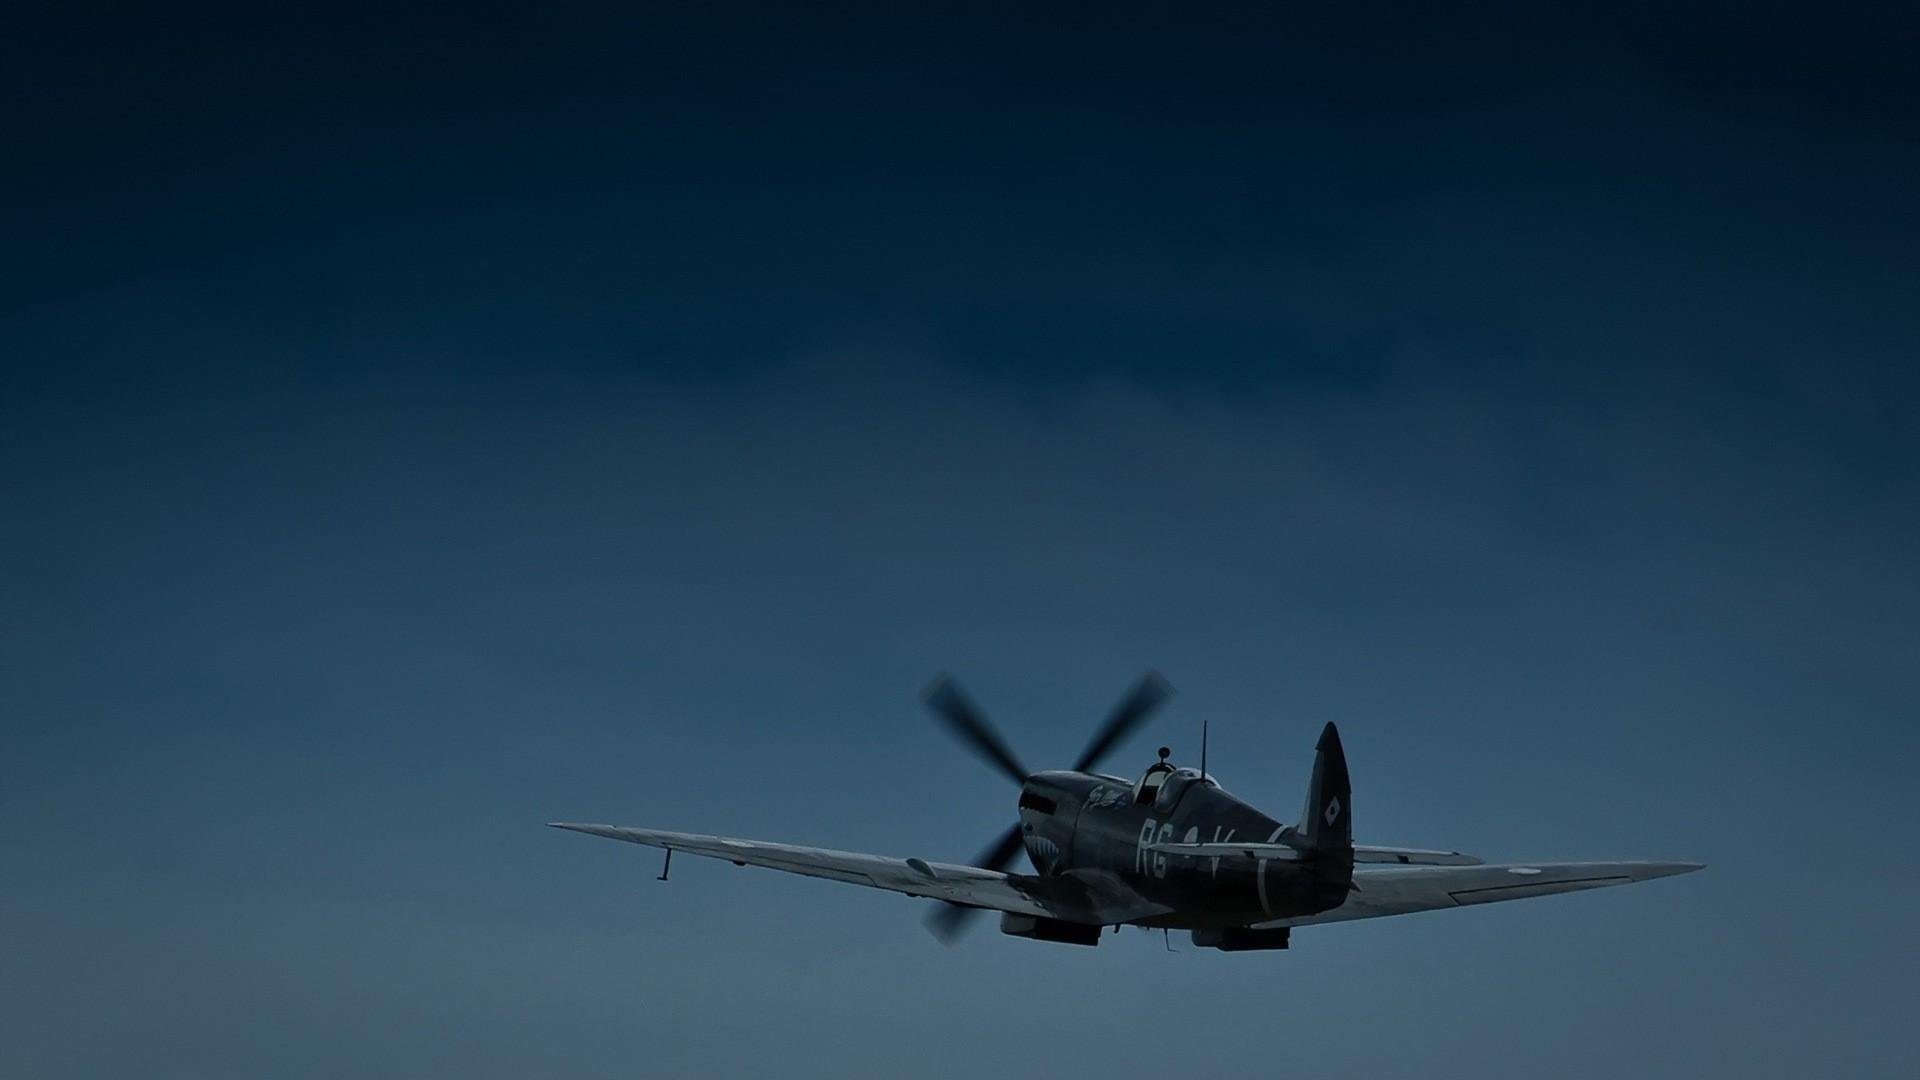 aviation supermarine spitfire twilight time of day wallpaper 1920x1080